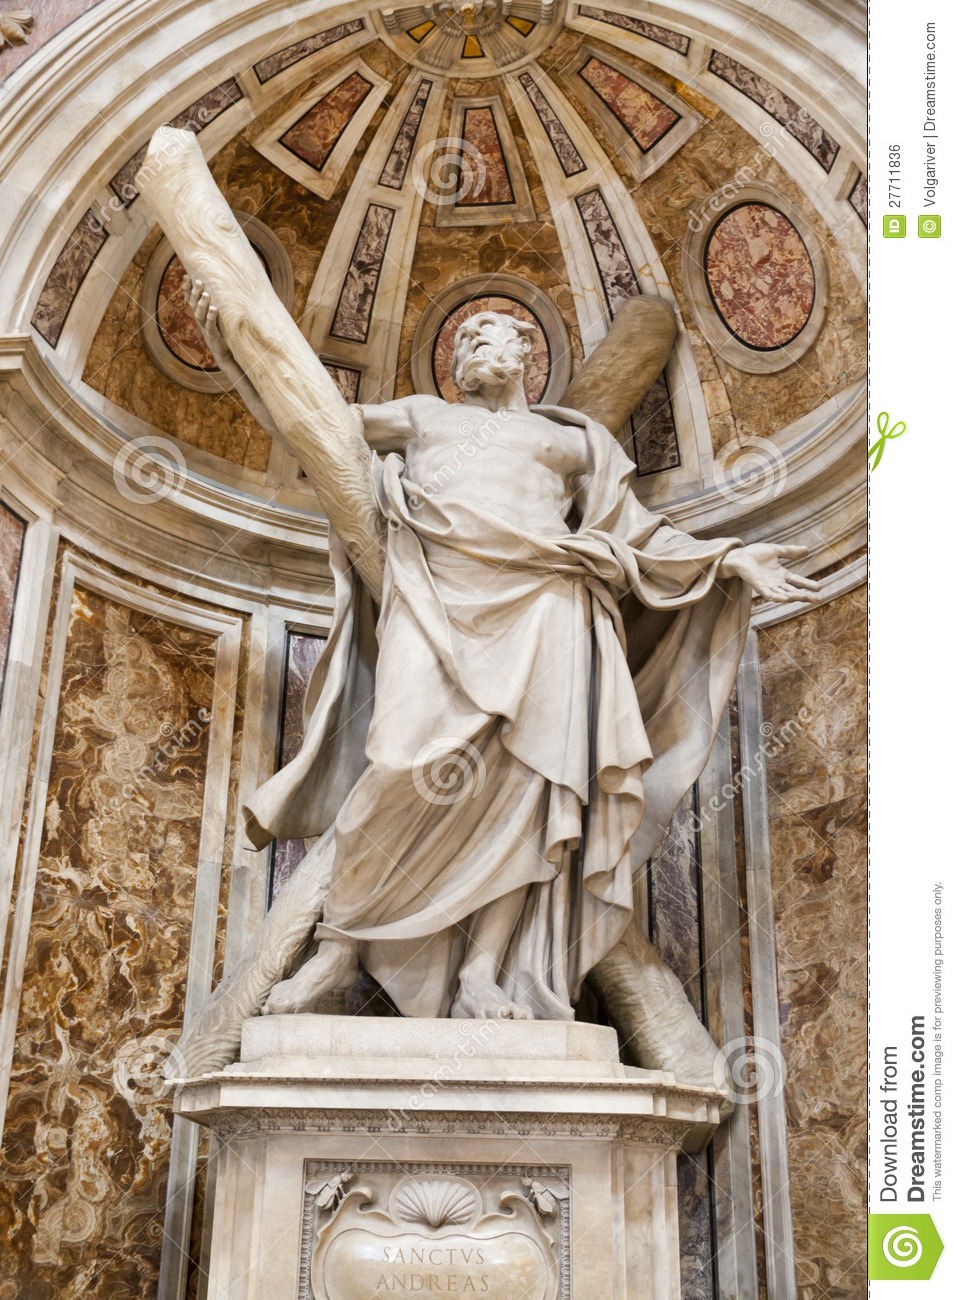 Rome.info > Museums in Rome and Vatican City